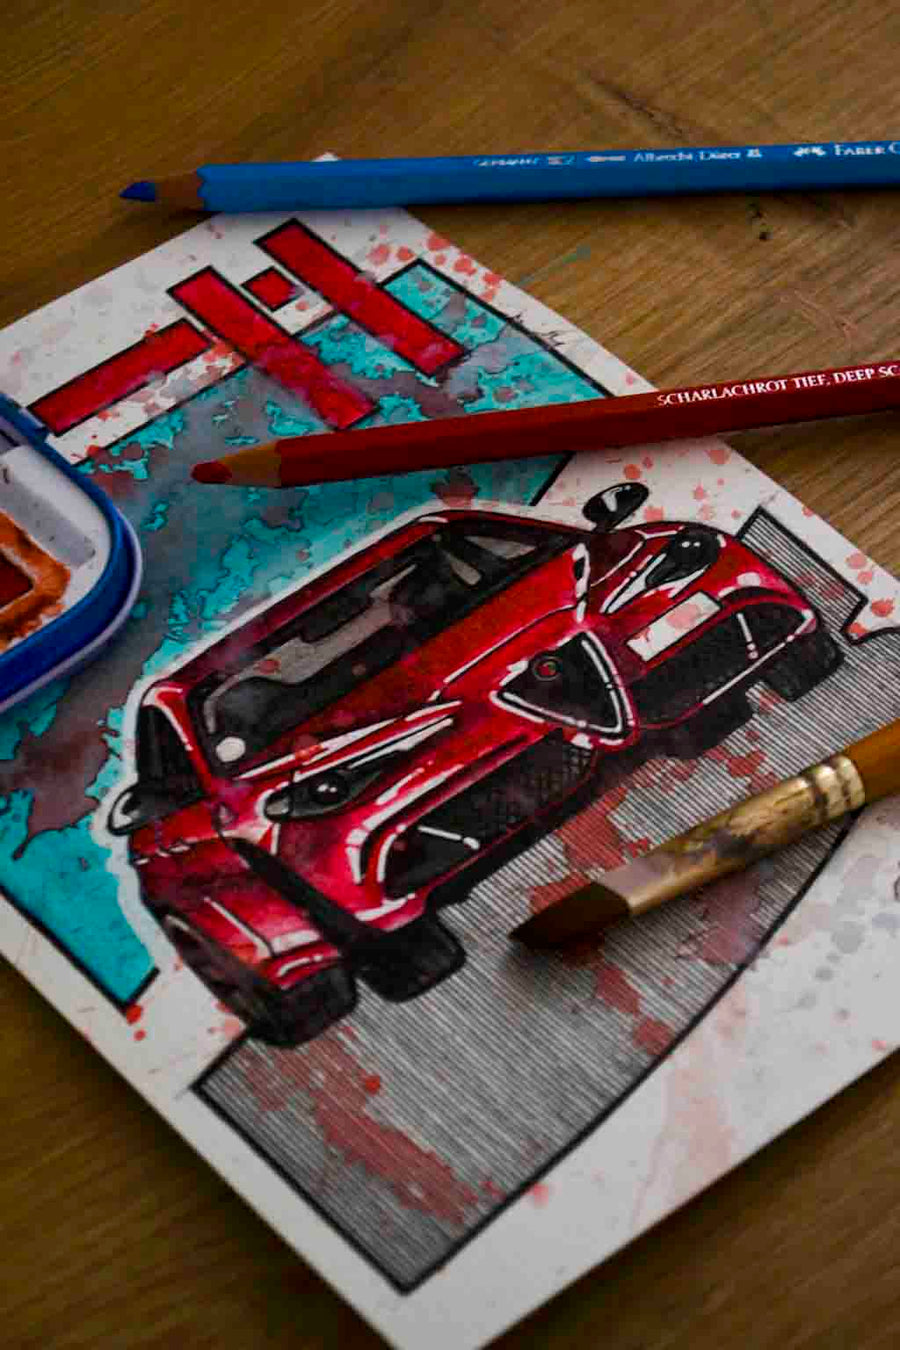 Inspiration from @choimbodeluna /ALFA ROMEO GIULIA Handmade Artwork and Coloring Pages (Option Puzzle)